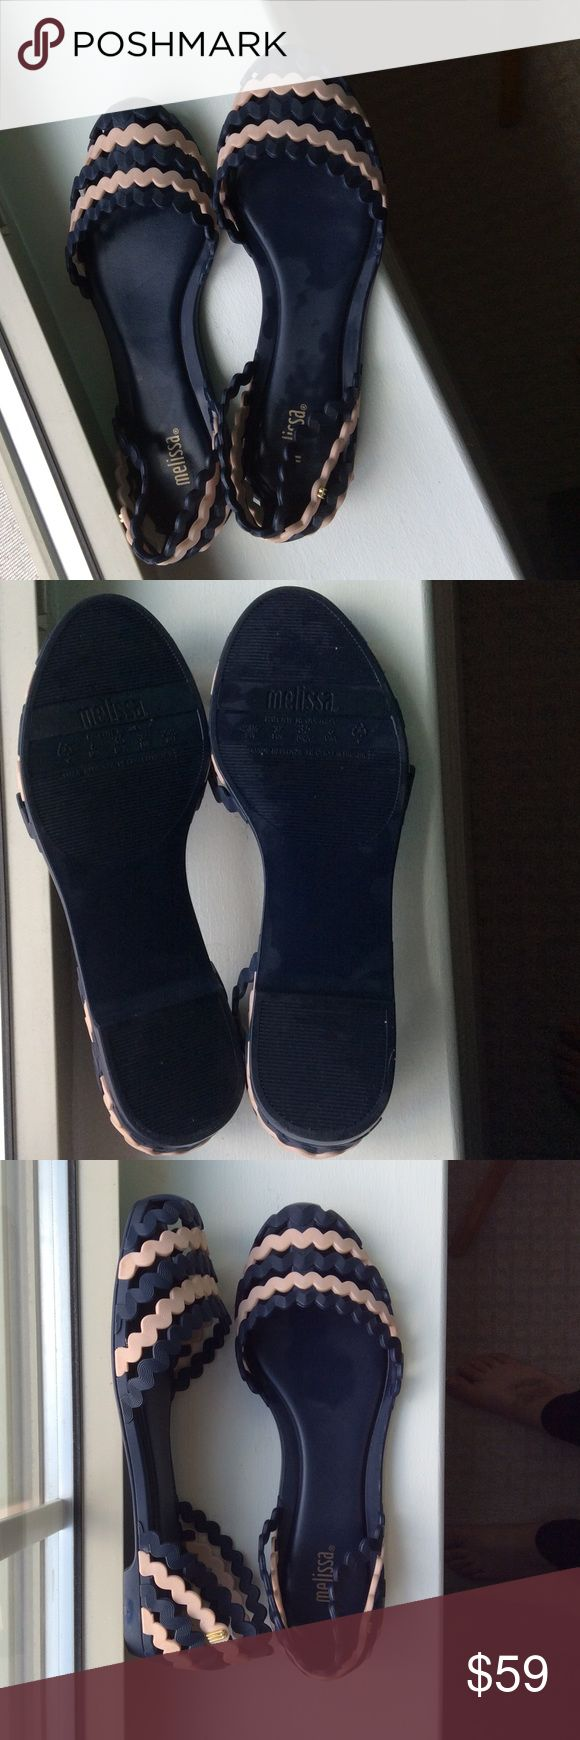 Melissa flats Gorgeous Melissa navy and baby pink flats like new wore them twice Melissa Shoes Flats & Loafers